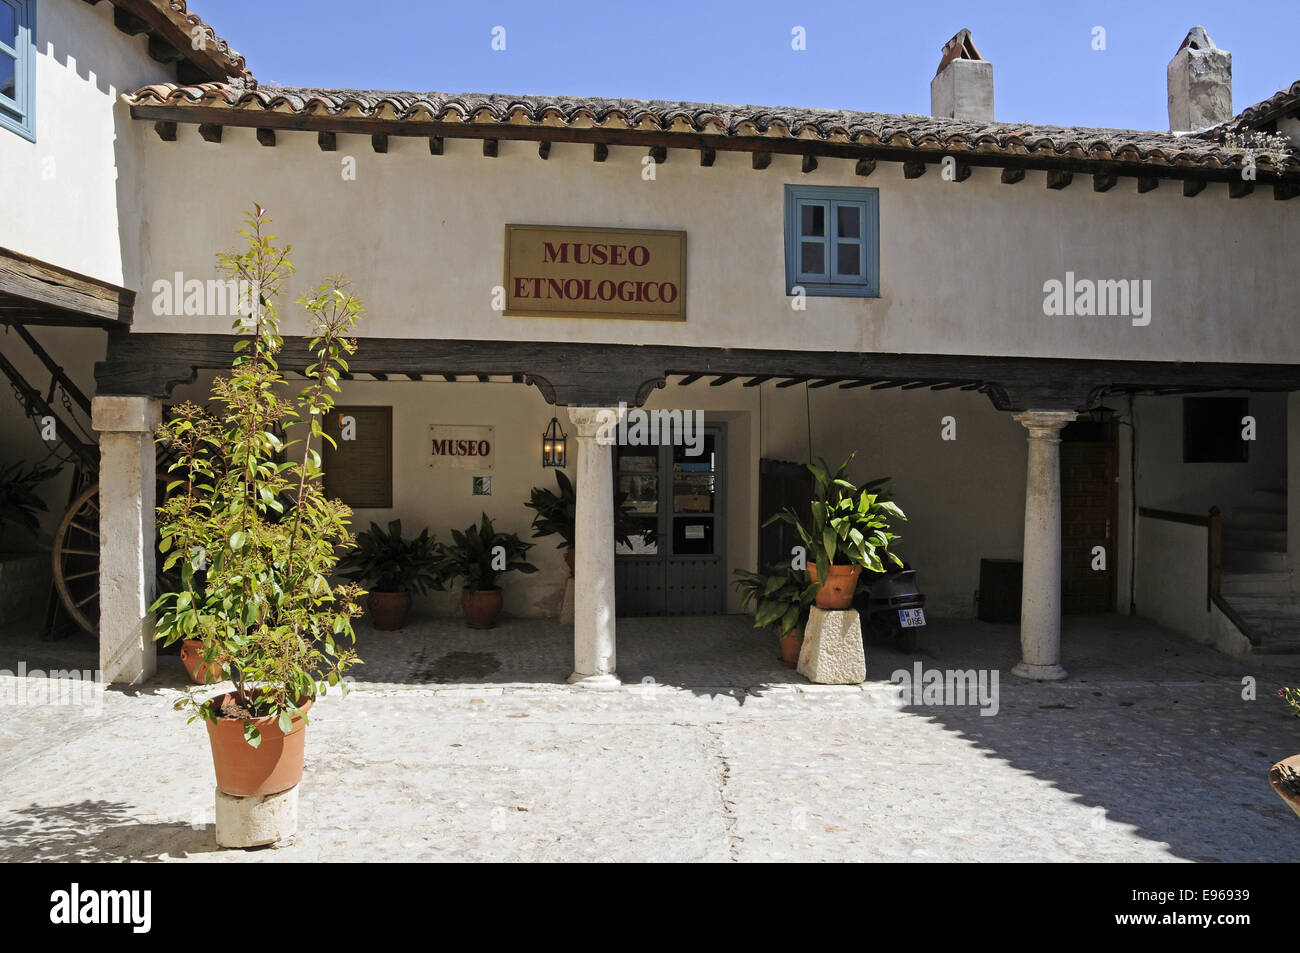 Ethnological Museum, Chinchon, Spain - Stock Image